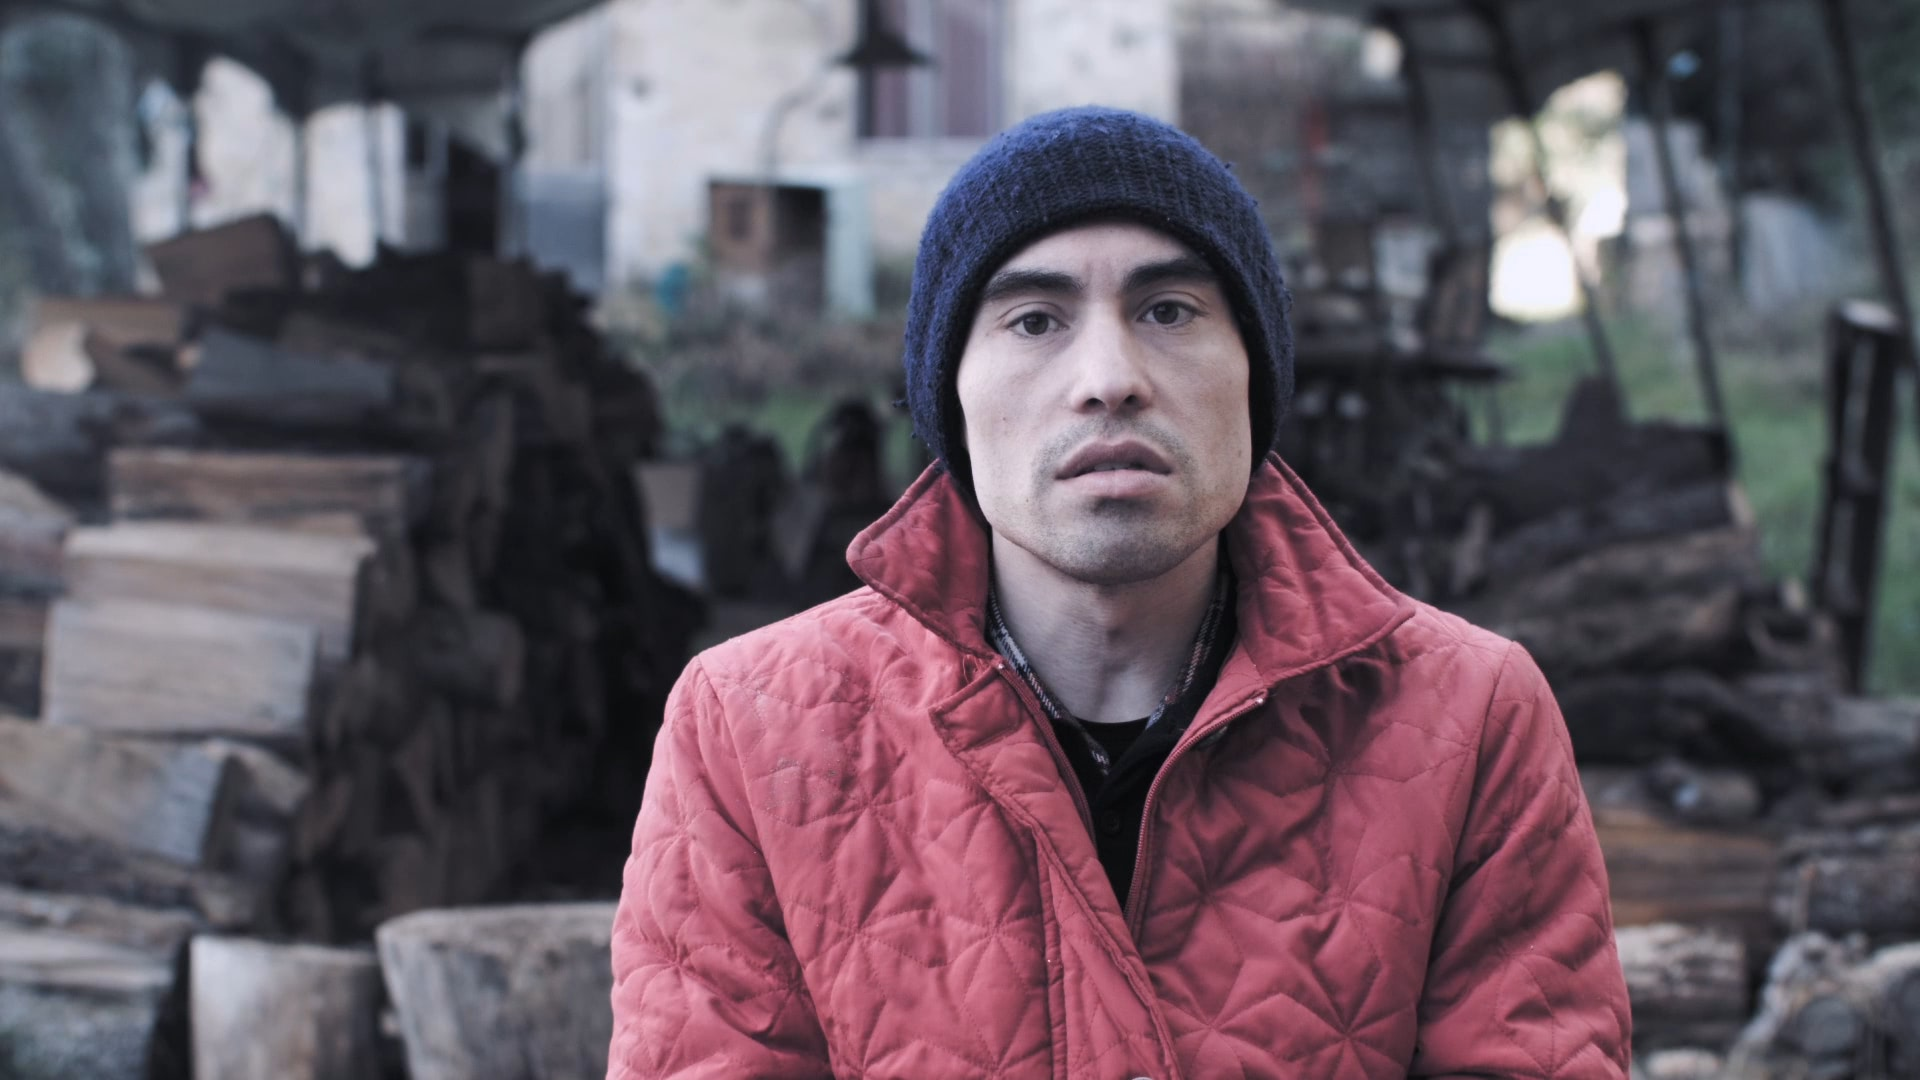 A man in a red jacket and a blue beanie is sitting outside in front of some firewood.